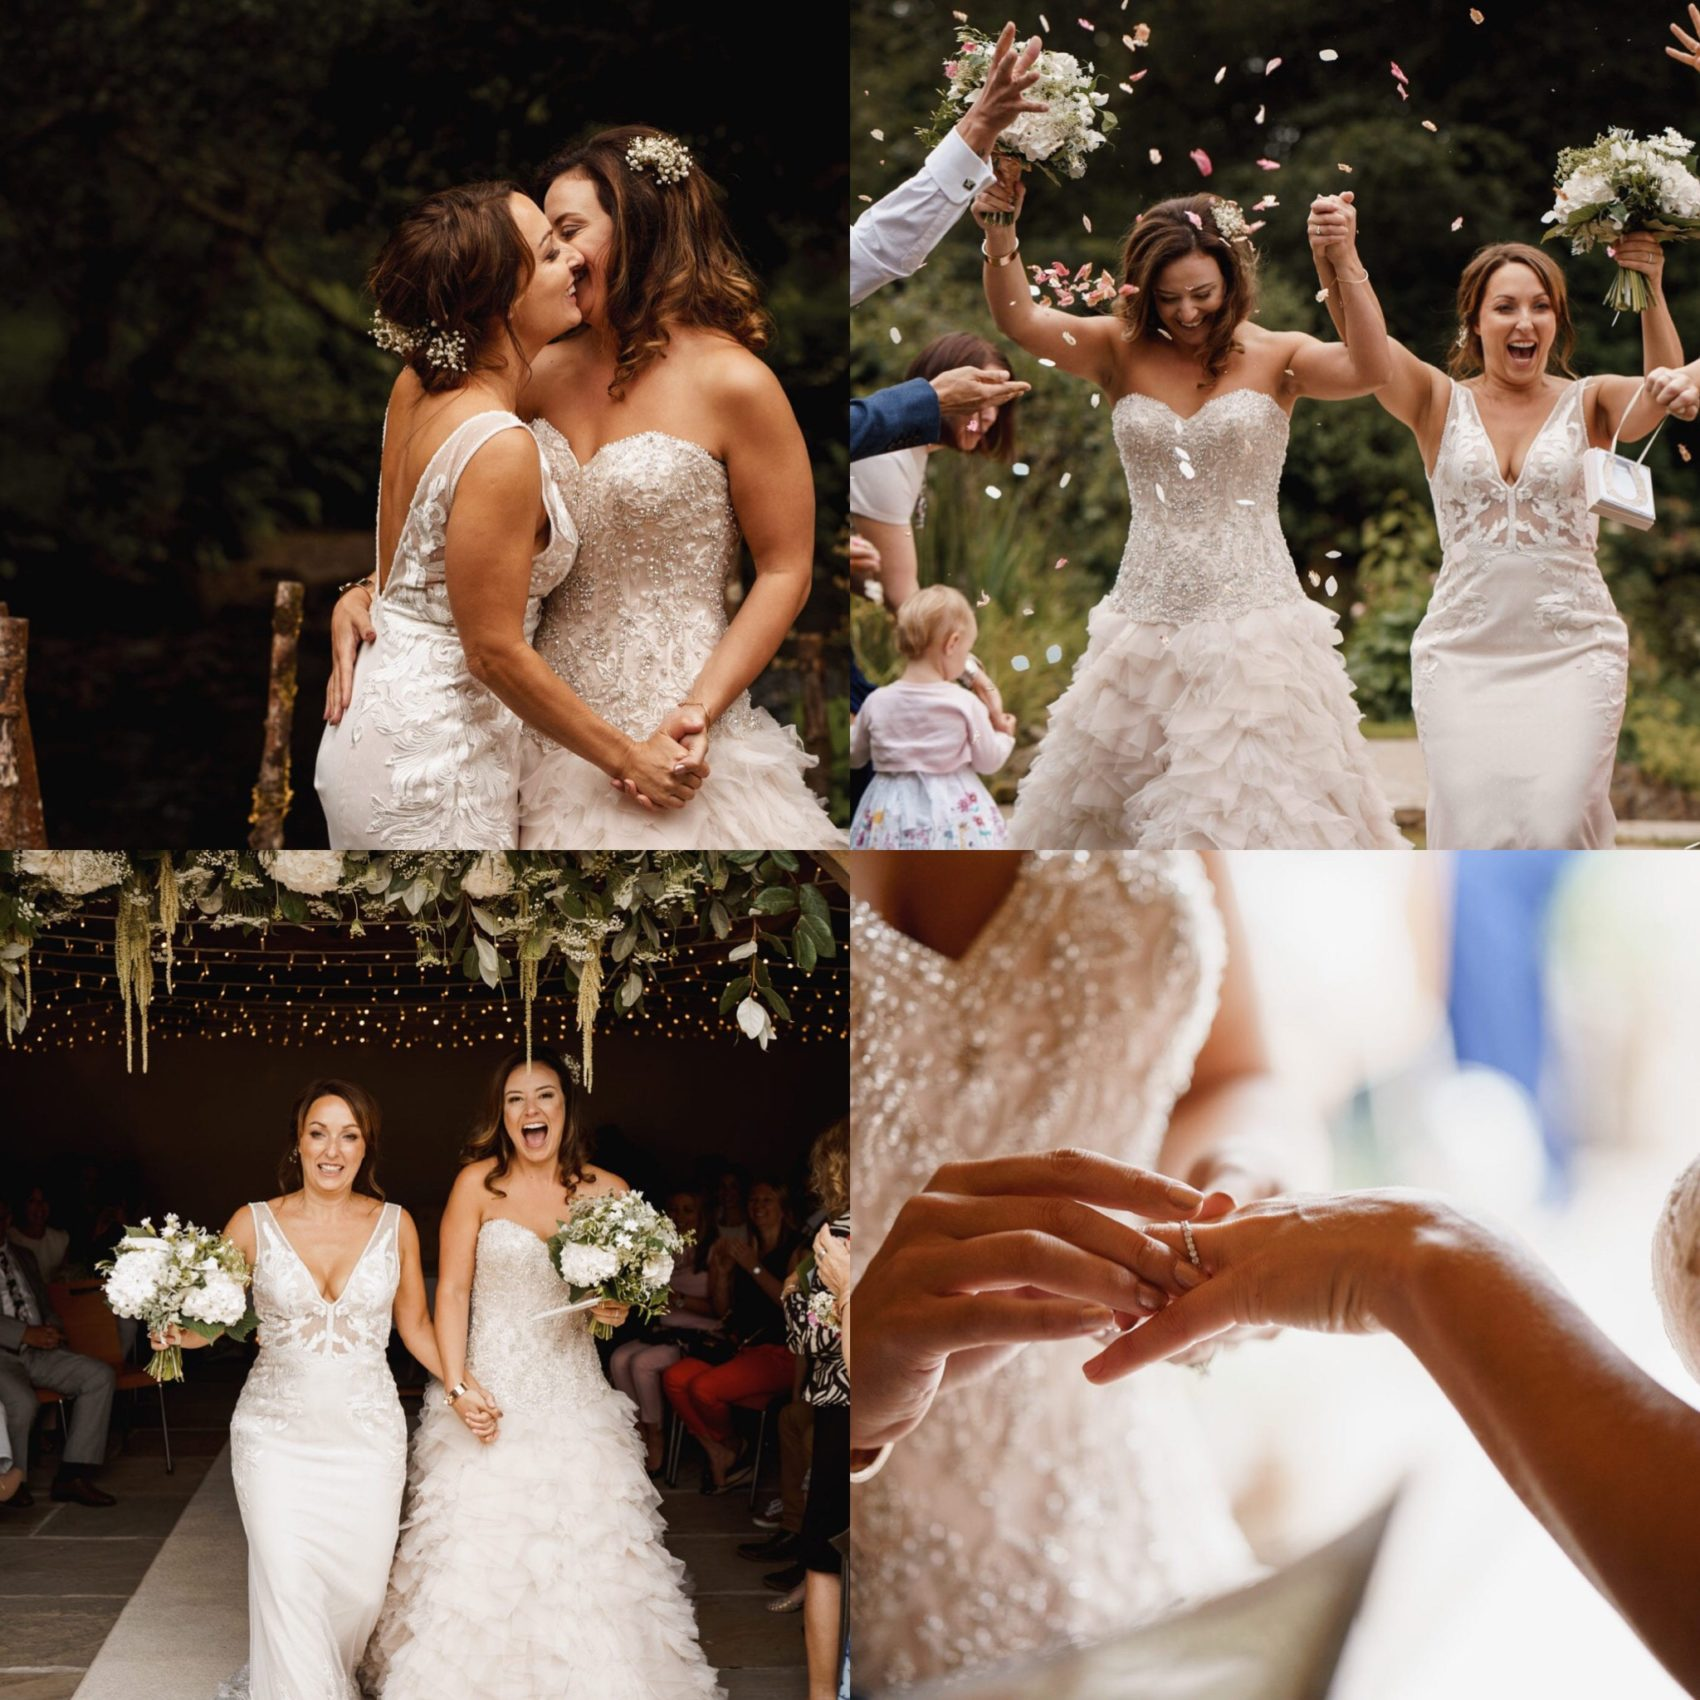 getting hitched, 2 girls, 2 brides, wedding dresses, dress, white wedding, confetti, bright, light, fun, ever after, lower grenofen